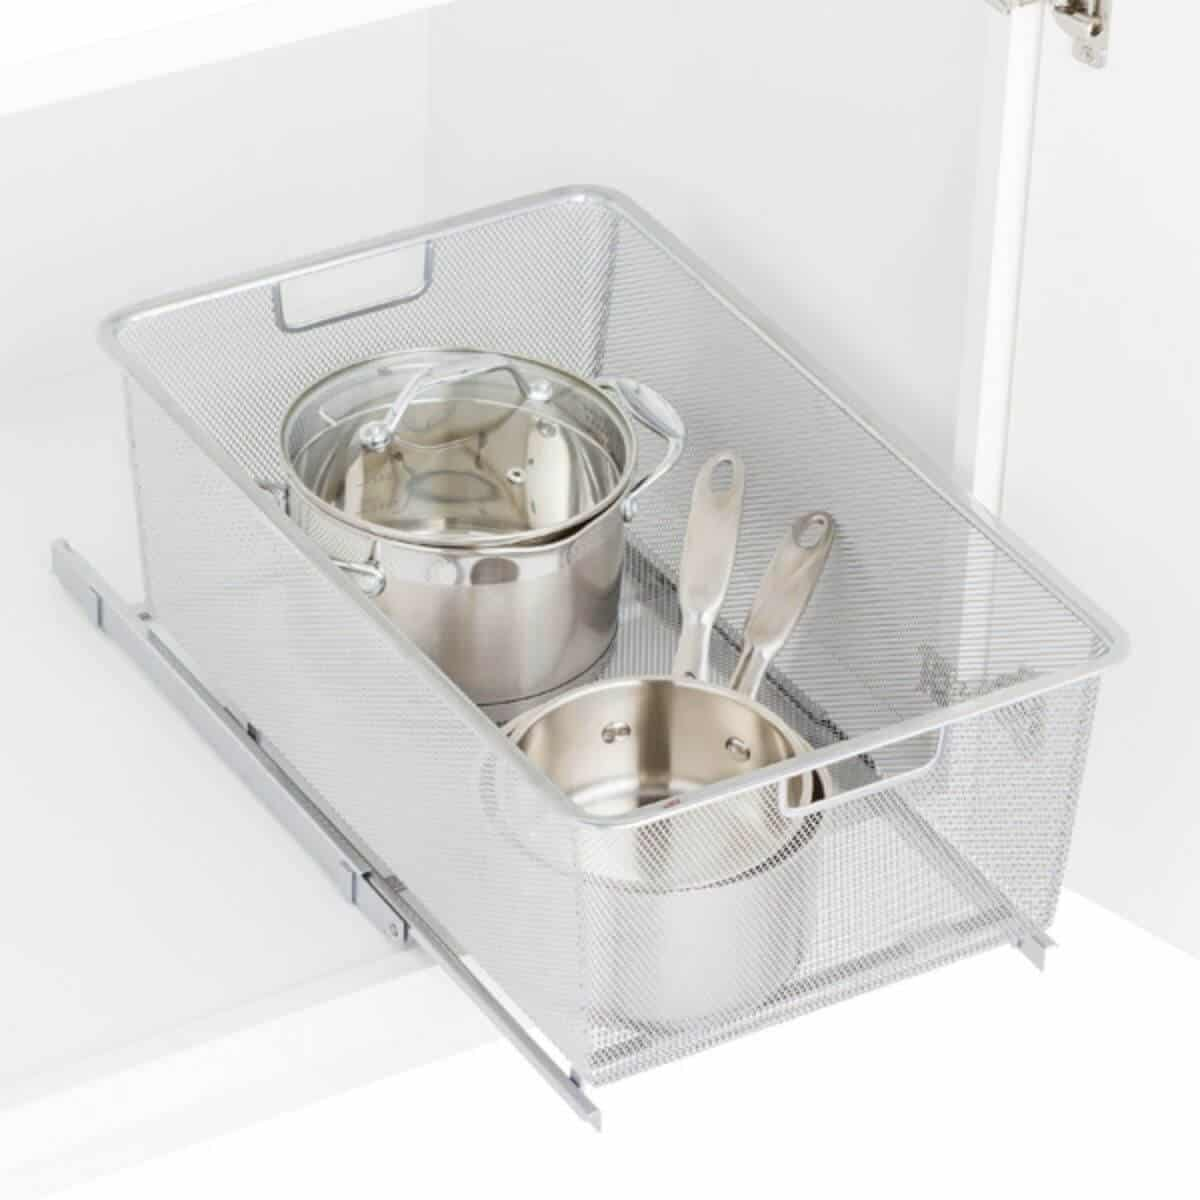 Mesh pull-out drawer with pots in it.